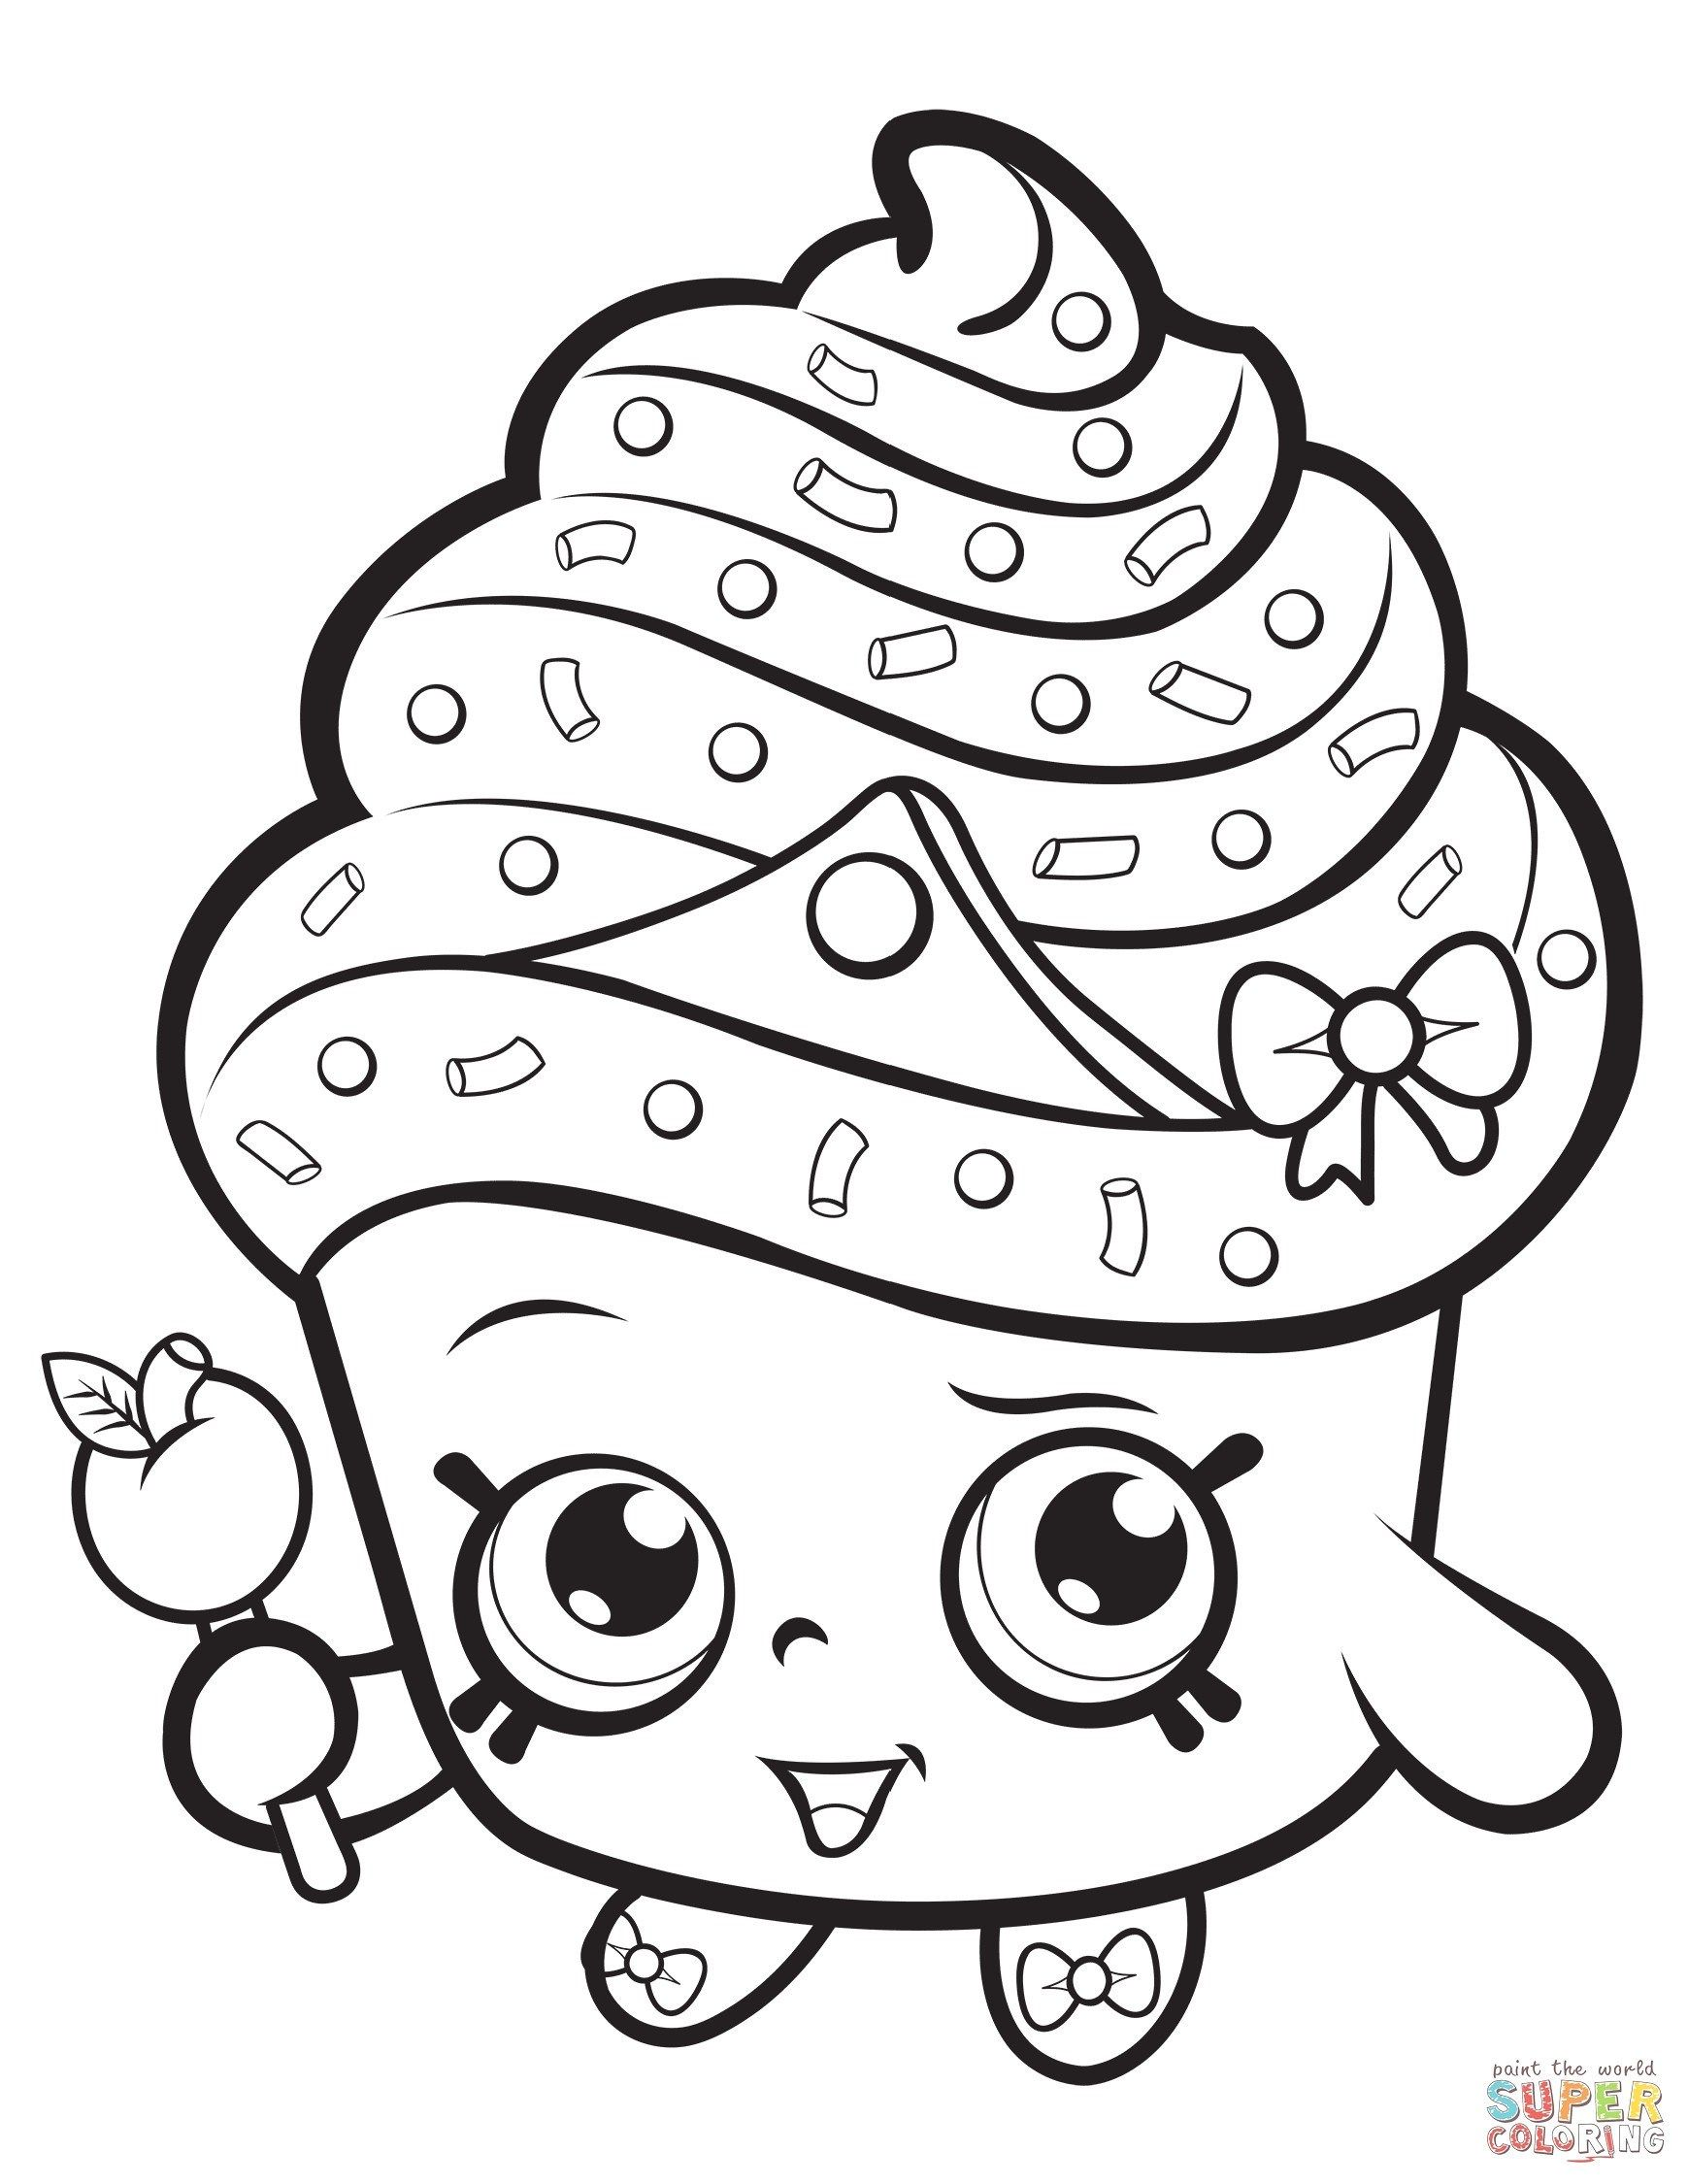 24 Best Picture Of Free Shopkins Coloring Pages Davemelillo Com Cupcake Coloring Pages Shopkin Coloring Pages Shopkins Colouring Pages